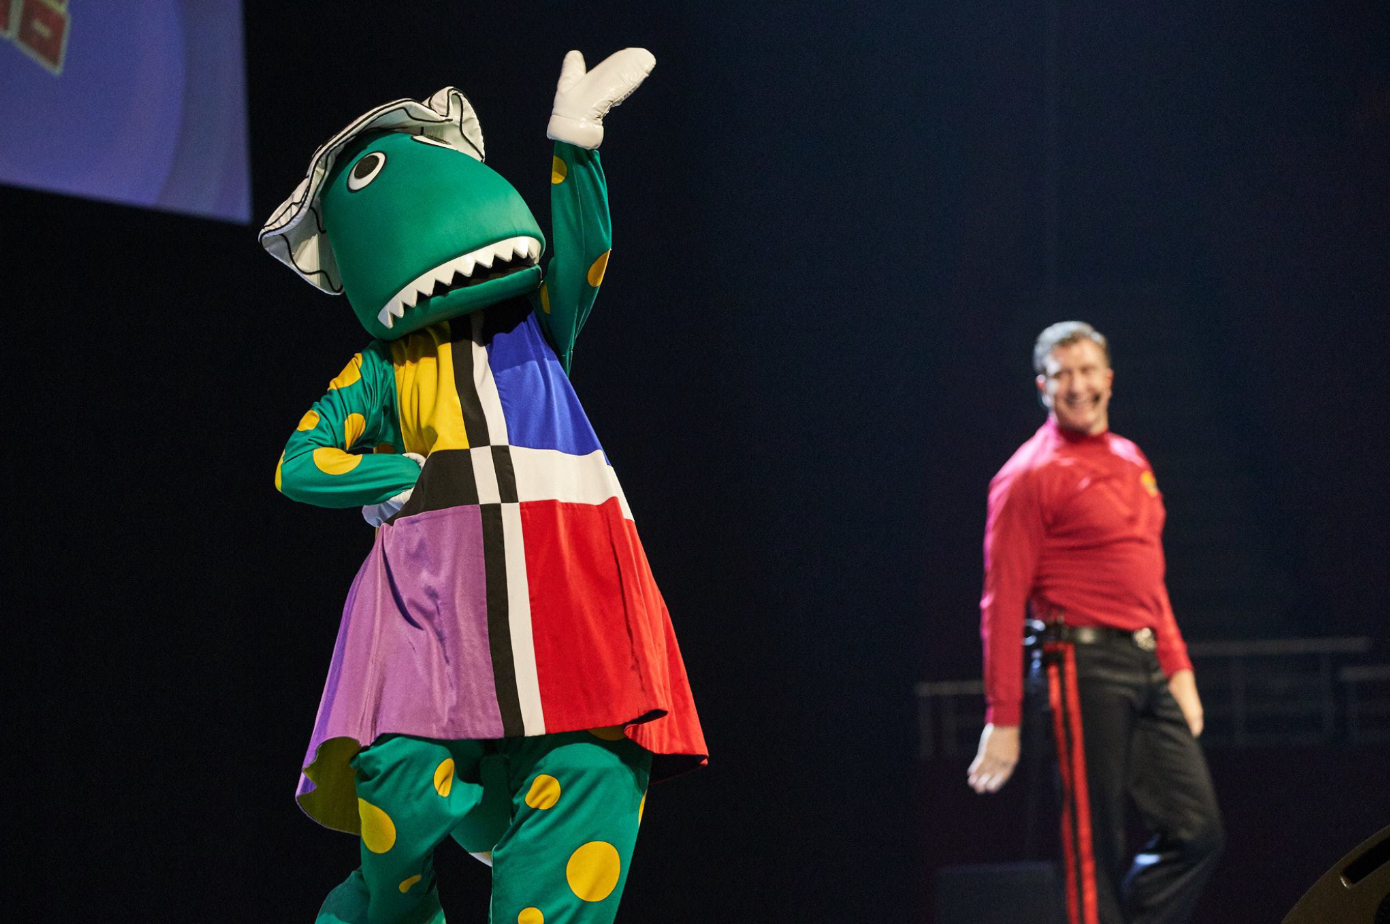 DANCE DANCE! The Wiggles BIG SHOW!/Gallery